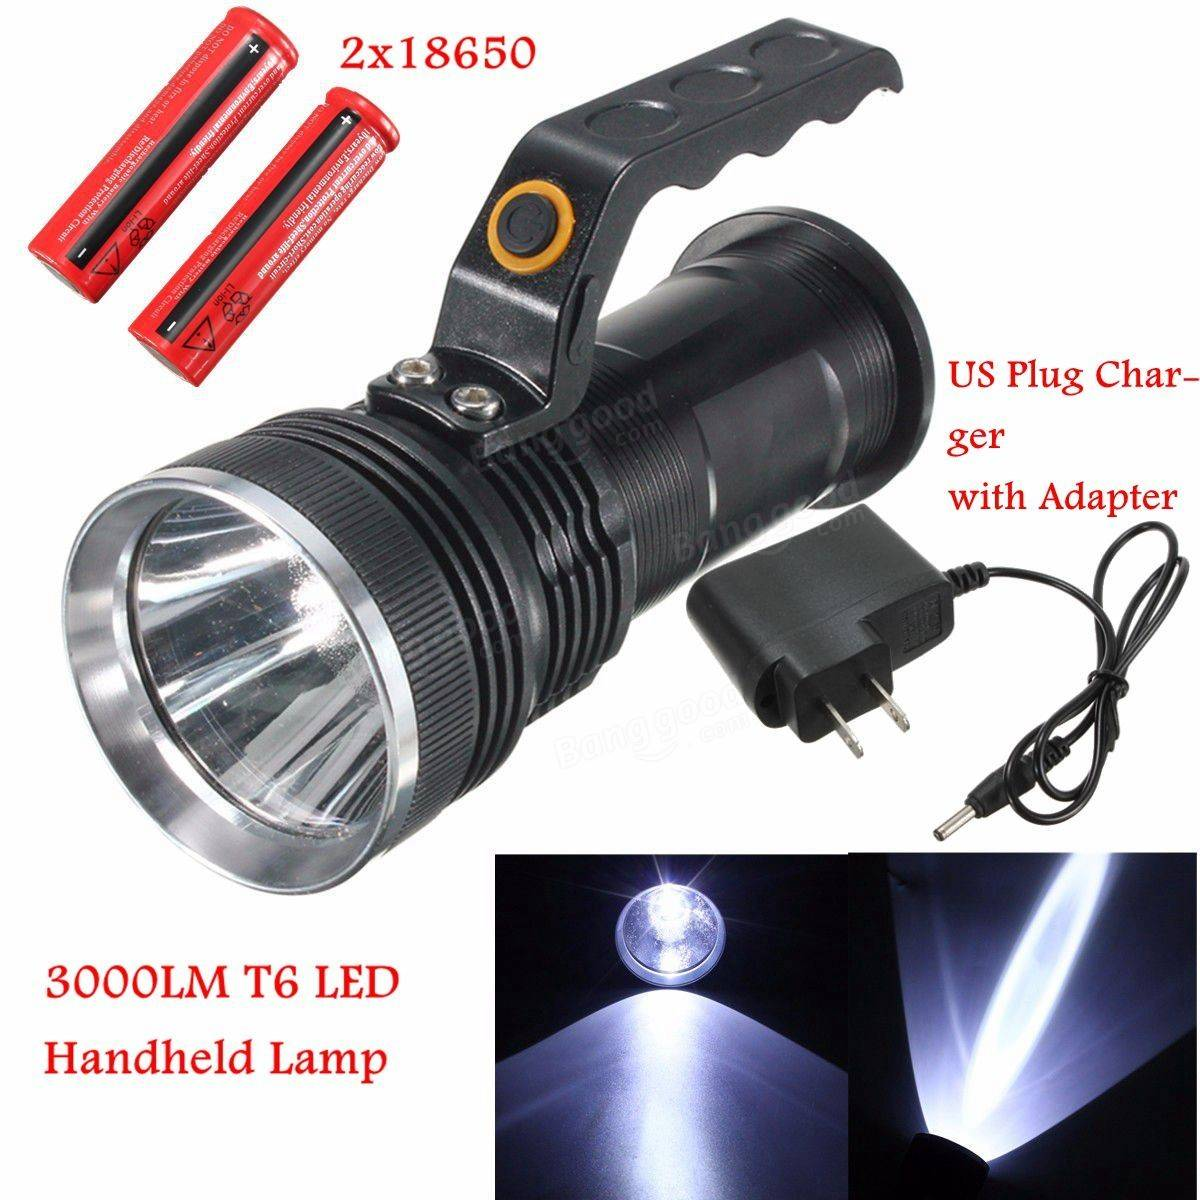 Universal 3000LM Rechargeable Police Tactical Brightness LED Flashlight Torch Handheld Lamp